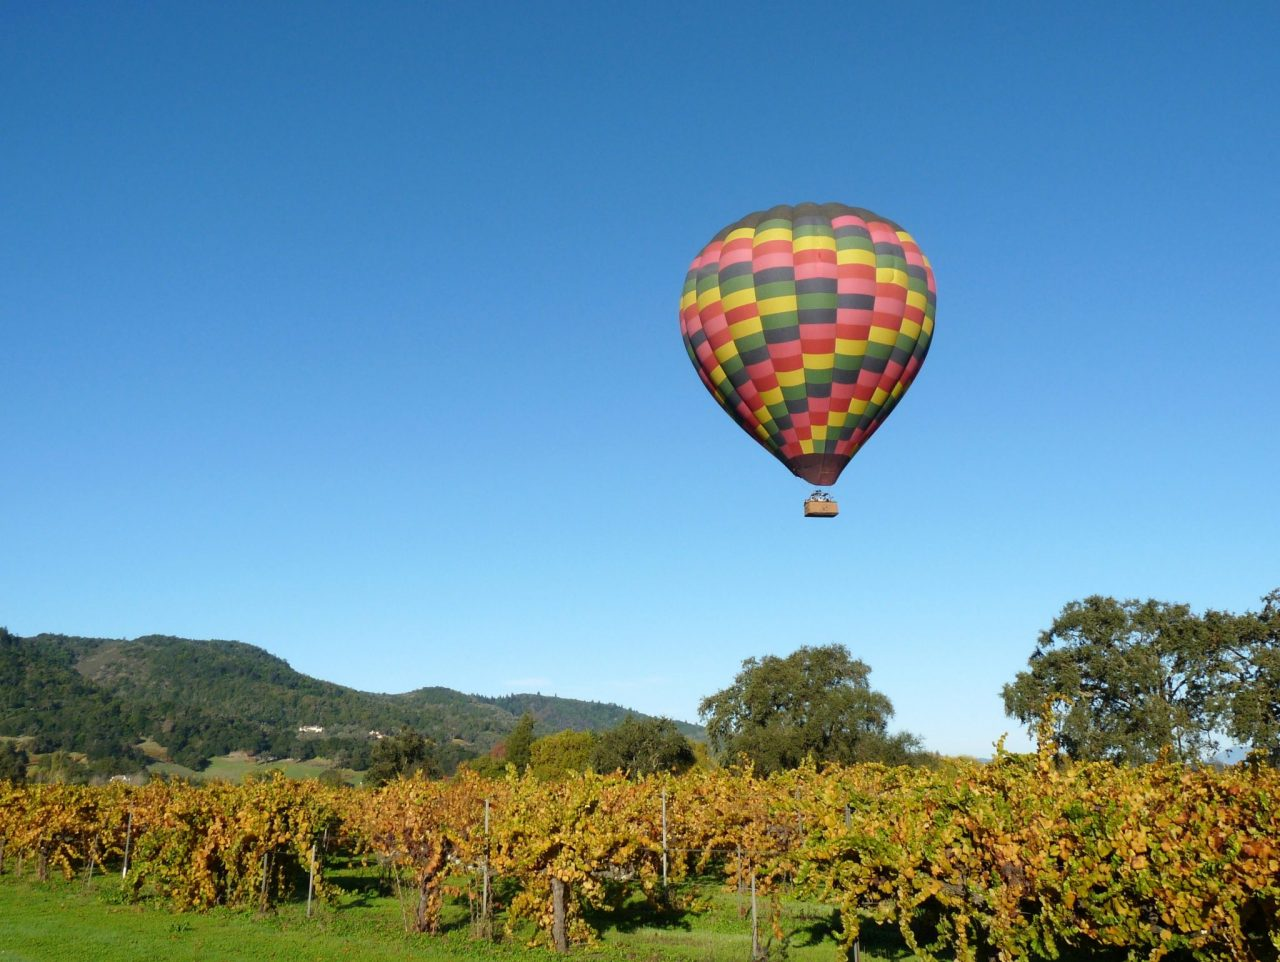 Hot Air balloon over Napa Valley Vineyards